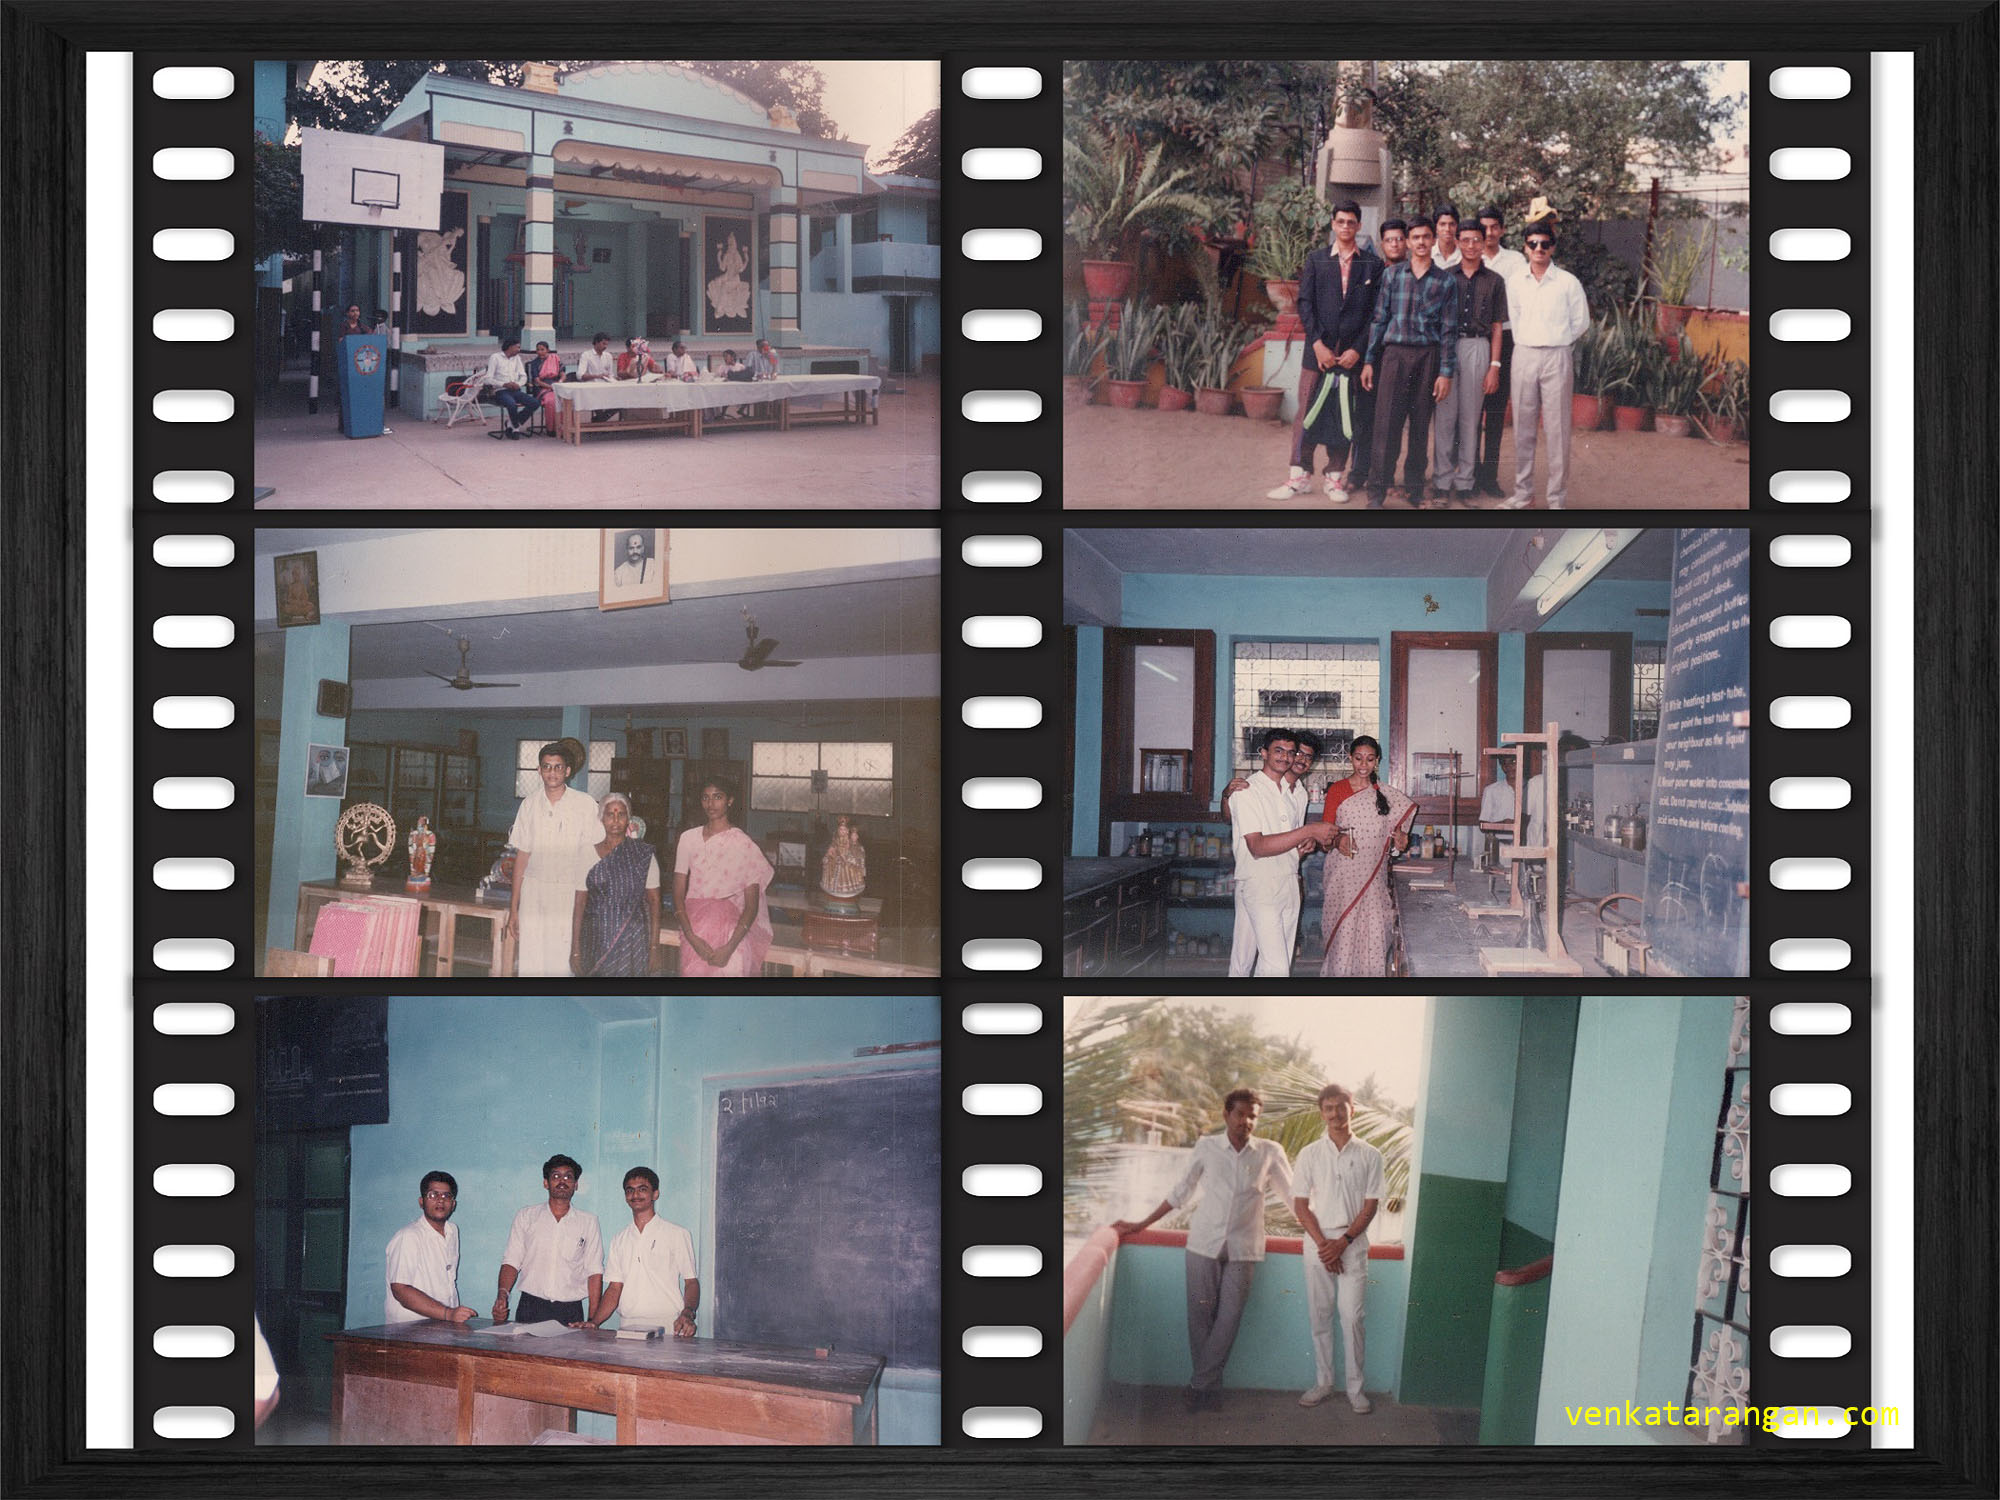 A few random pictures of my school days, taken on the early months of 1992. (Clockwise from top left) School Open Auditorium, Founder Sri Panicker's memorial, Chemistry Lab, Near Biology Lab, XI A Classroom and the School Library.